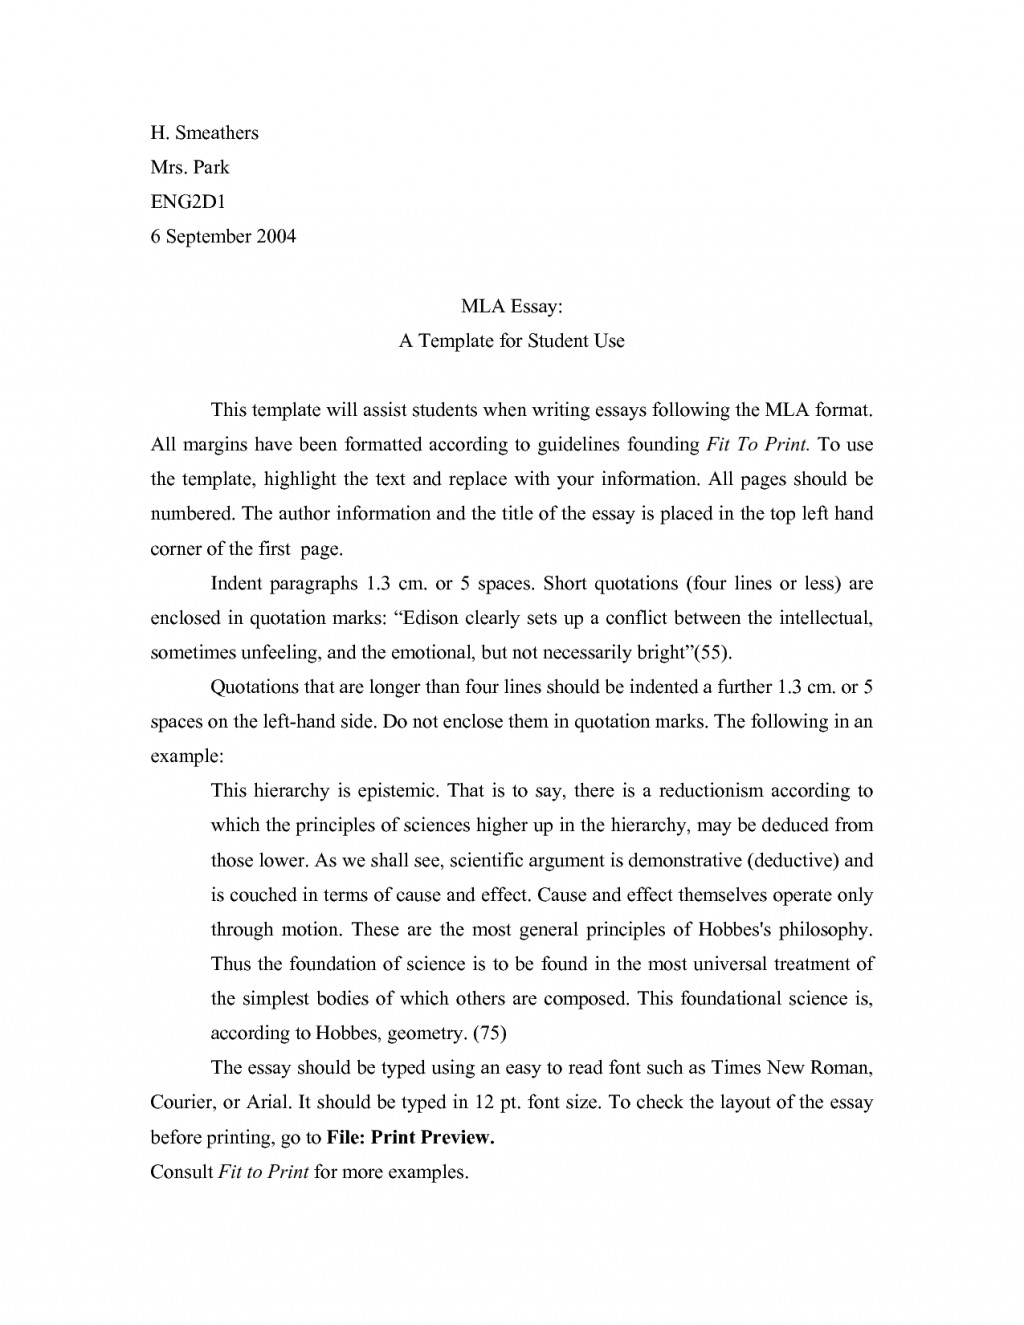 006 Research Paper Mla Format Template Awesome Outline Example Large